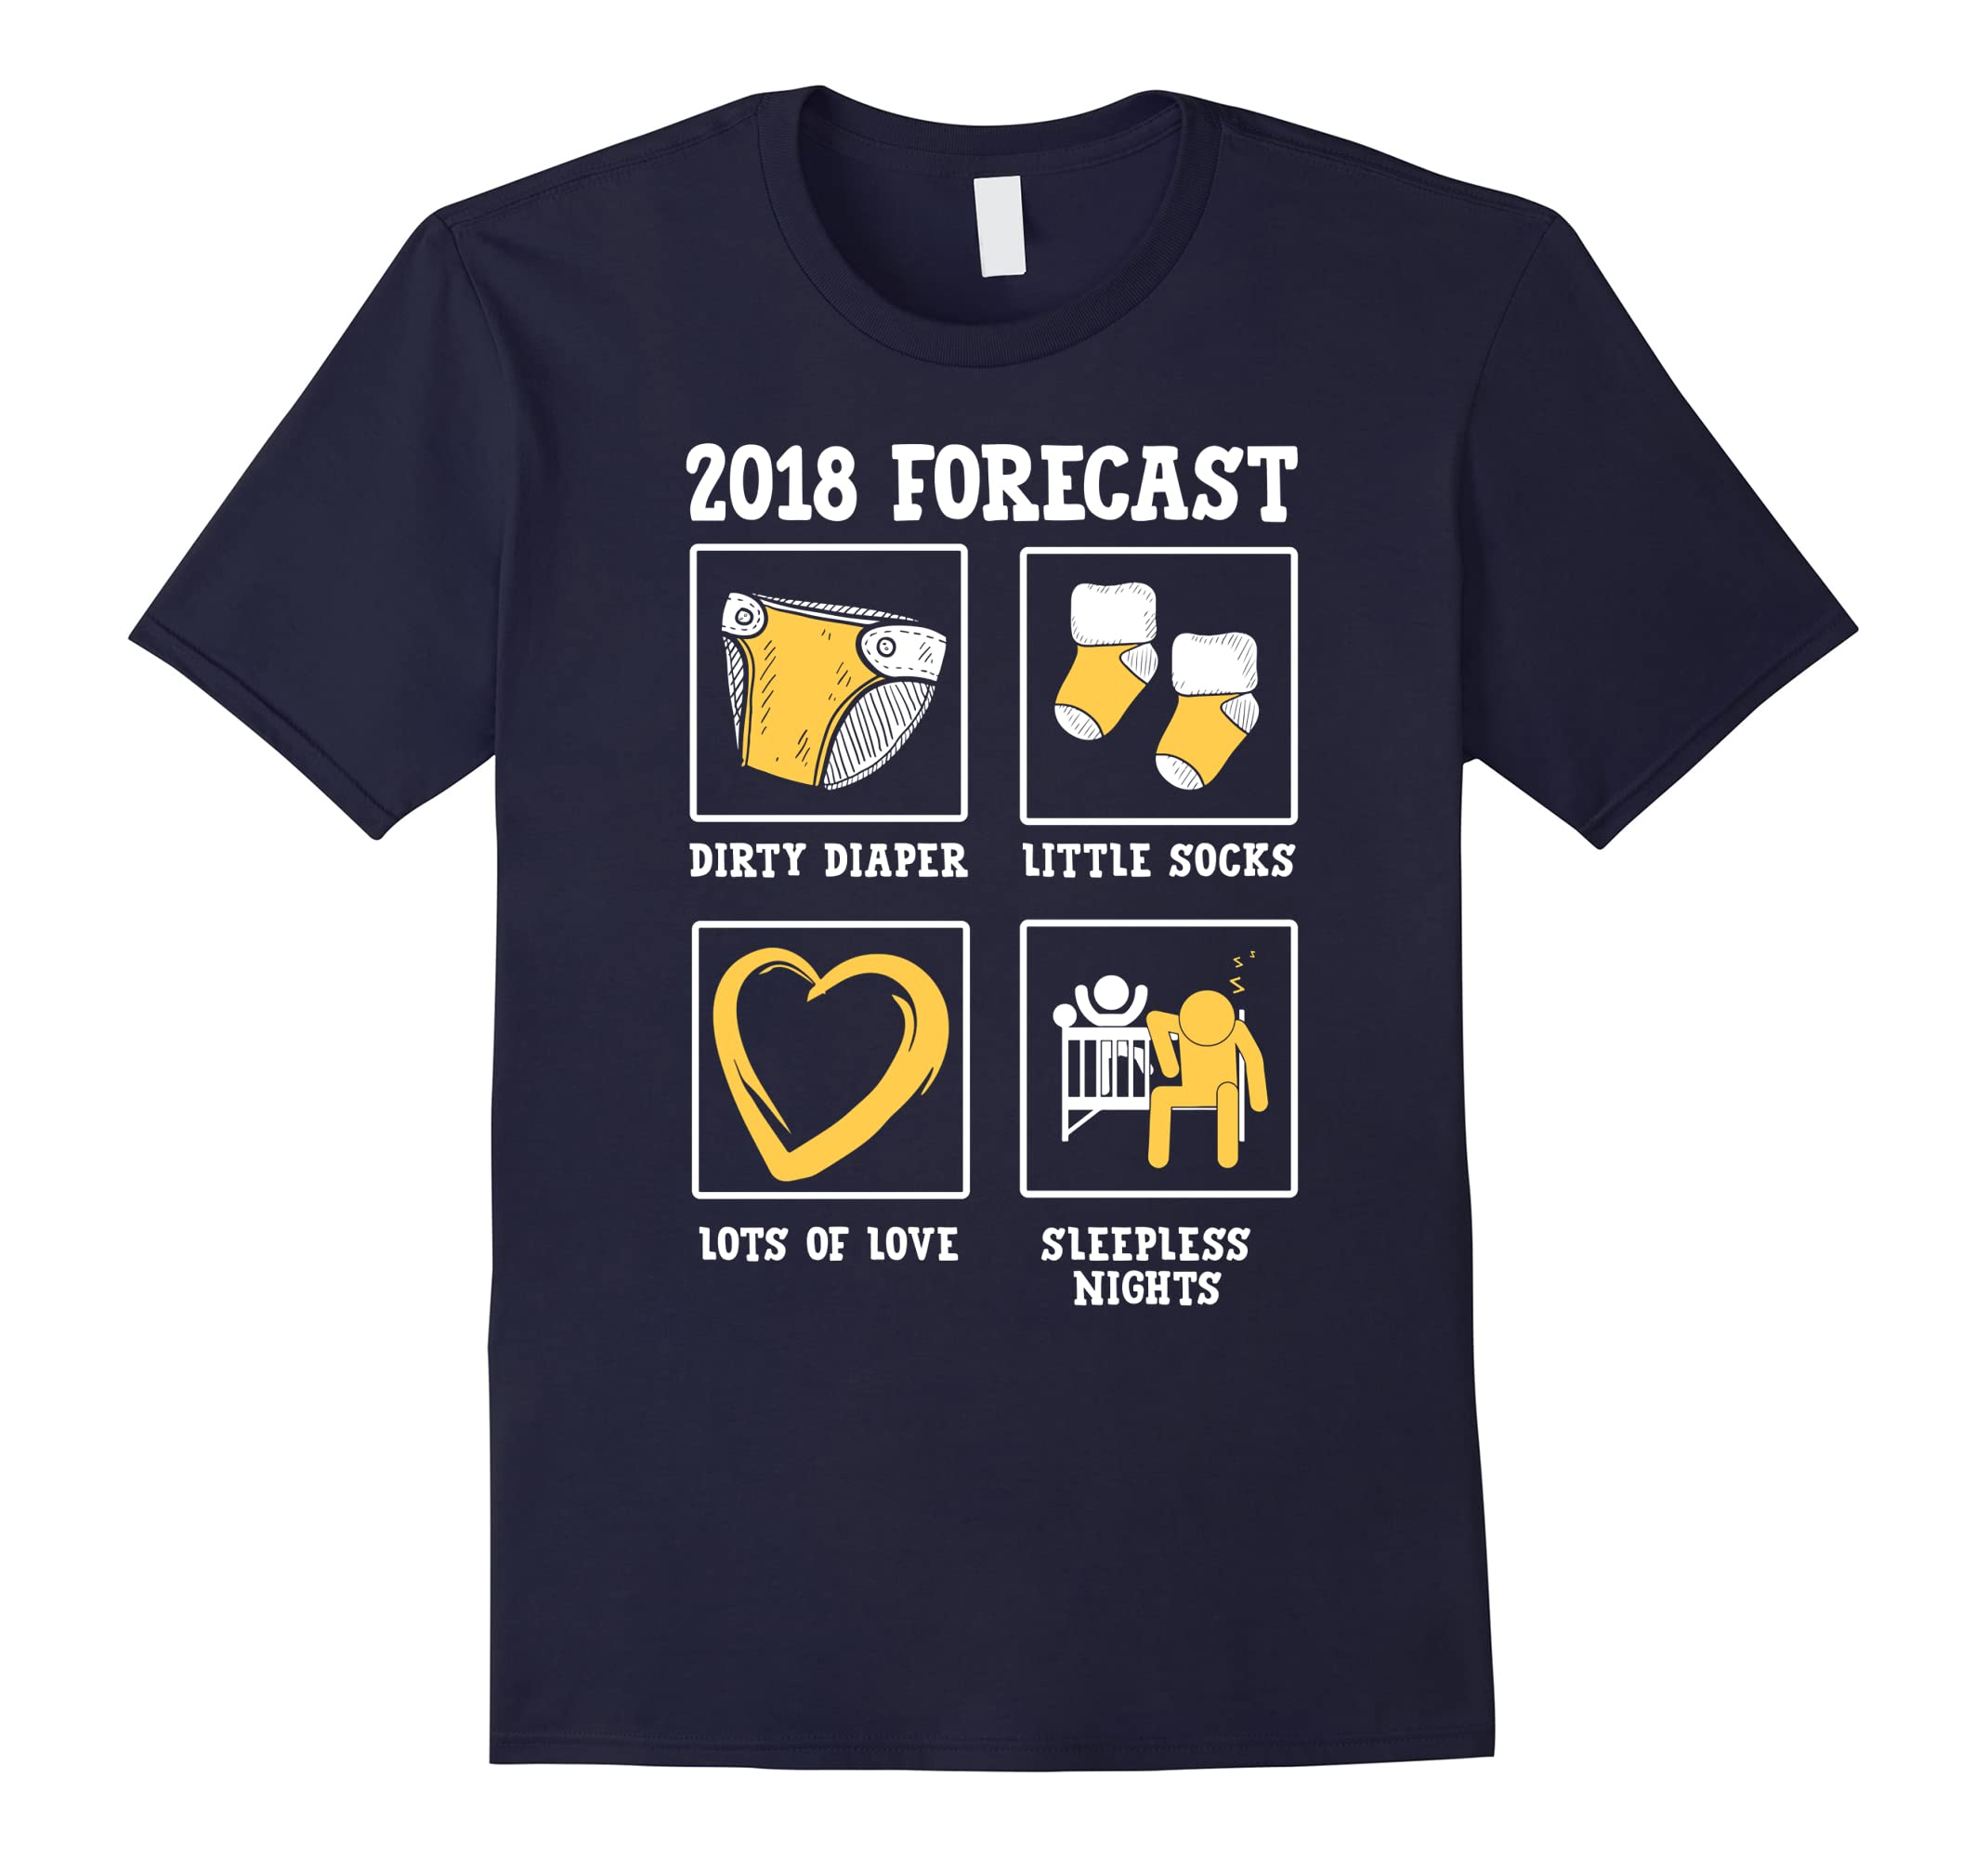 2018 Forecast New Mom Dad Expecting Baby Announcement Shirt-ah my shirt one gift